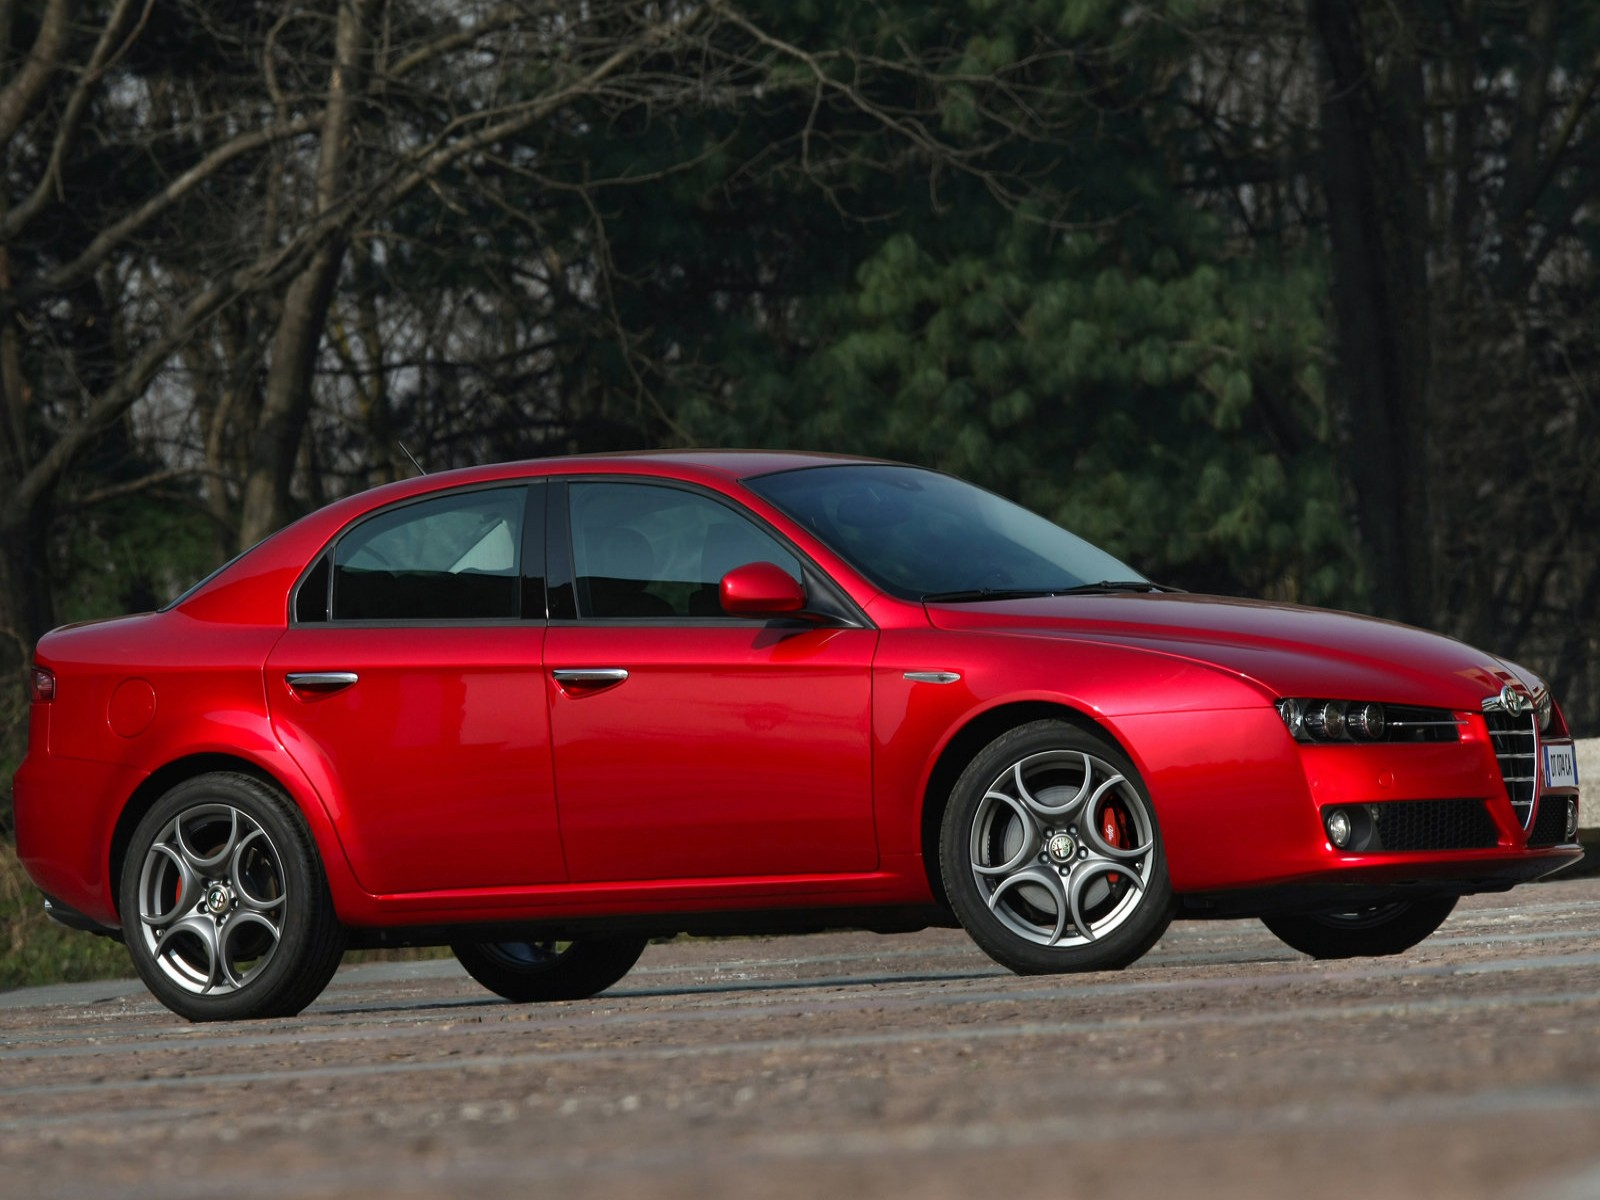 2010 Alfa Romeo 159 1750 TBi CAR WORLD